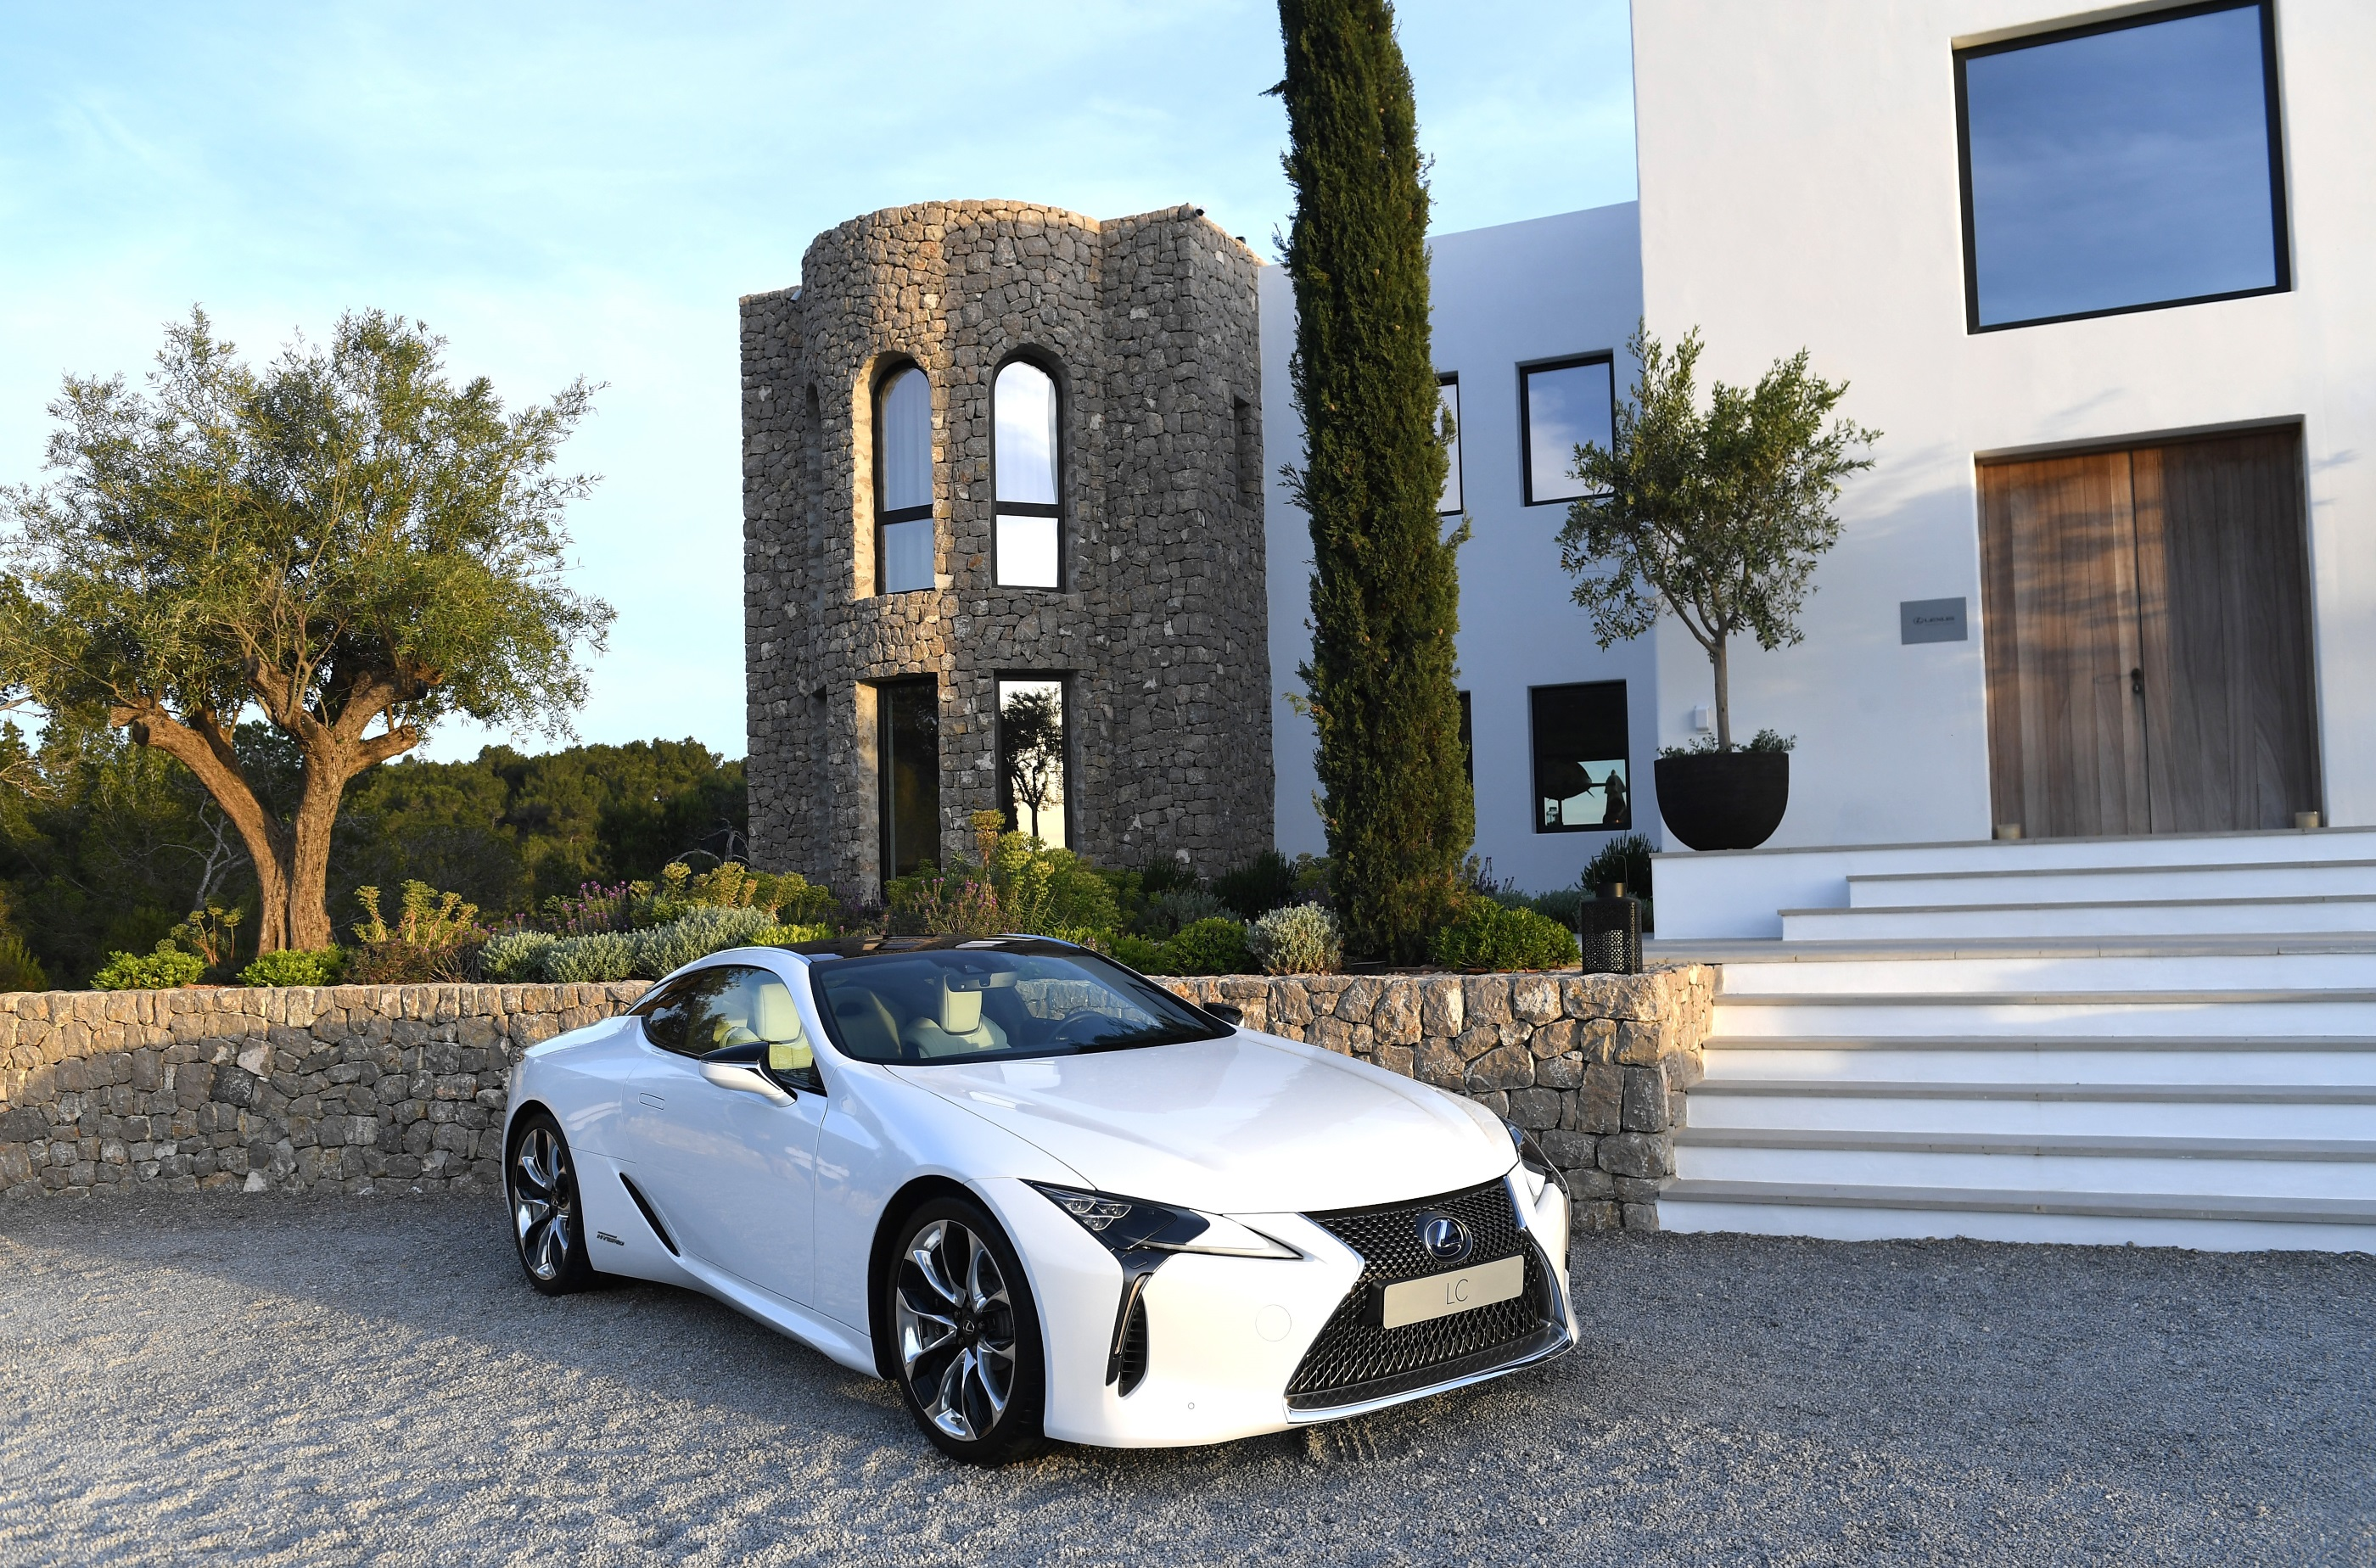 Lexus regressa as passerelles